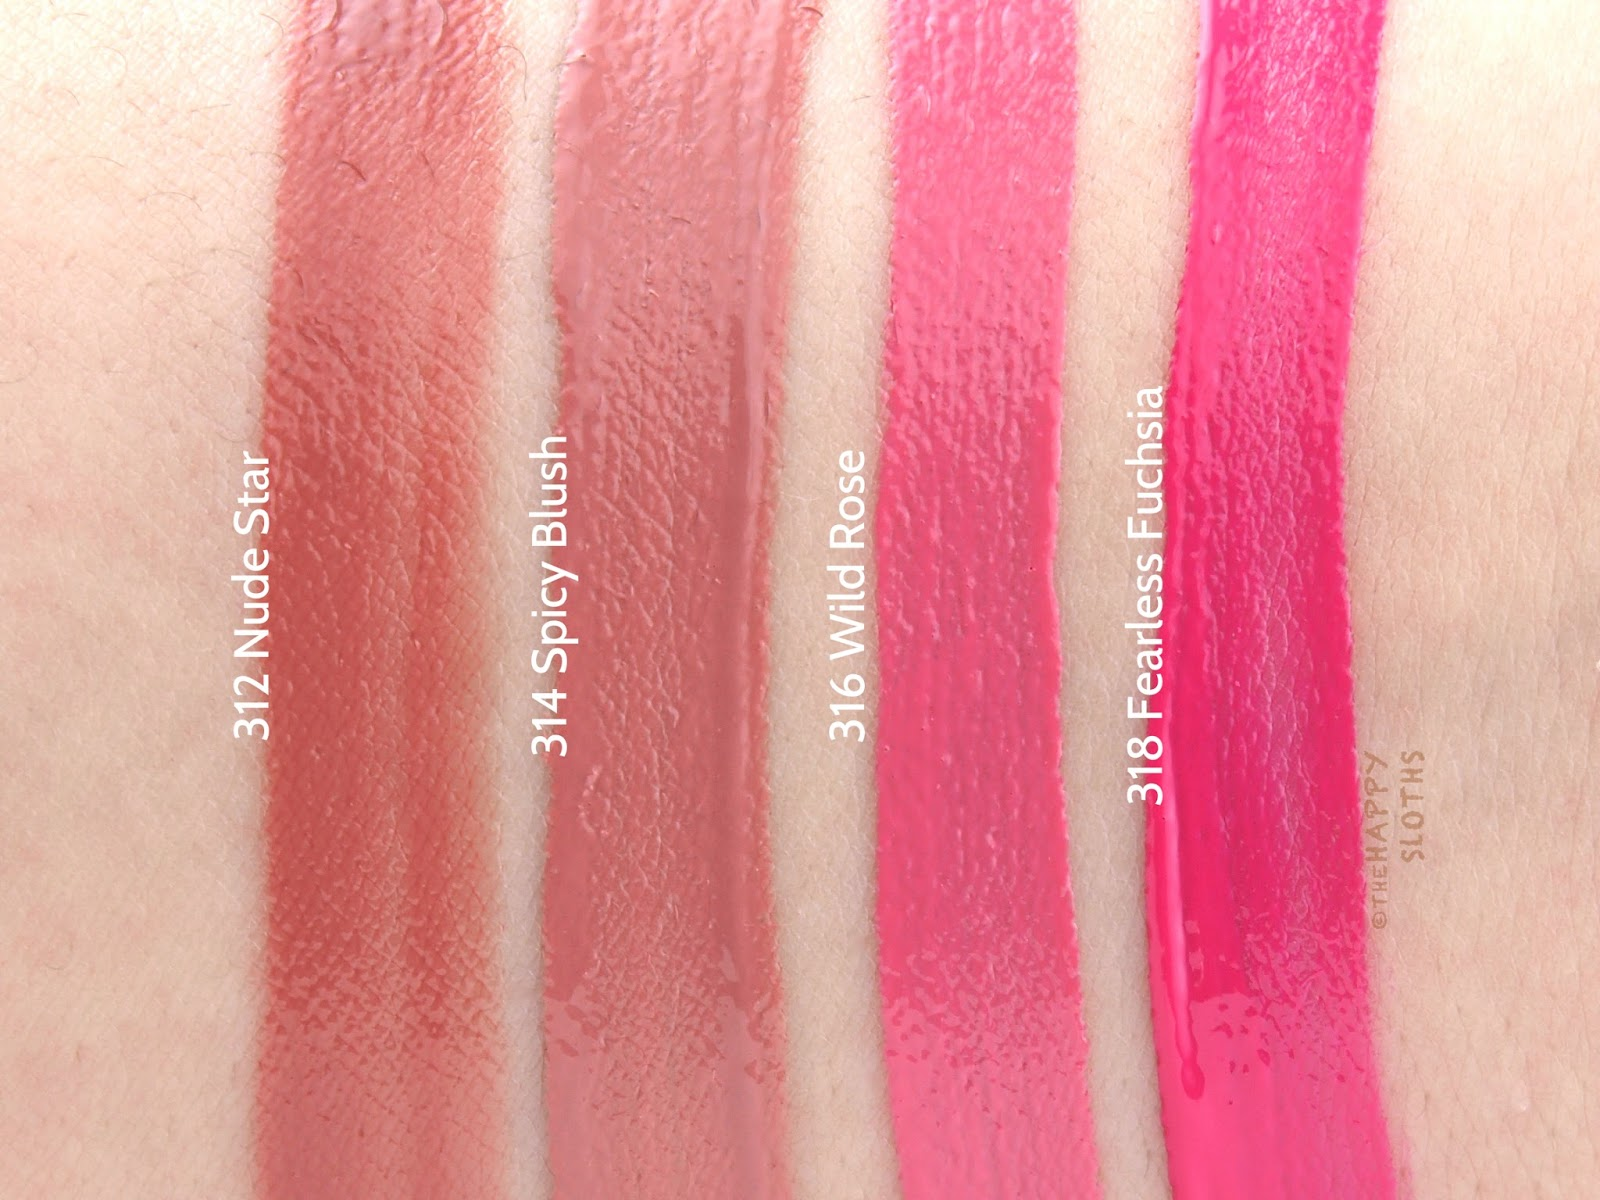 L'Oreal Infallible Paints Lips Liquid Lipstick: Review and ...